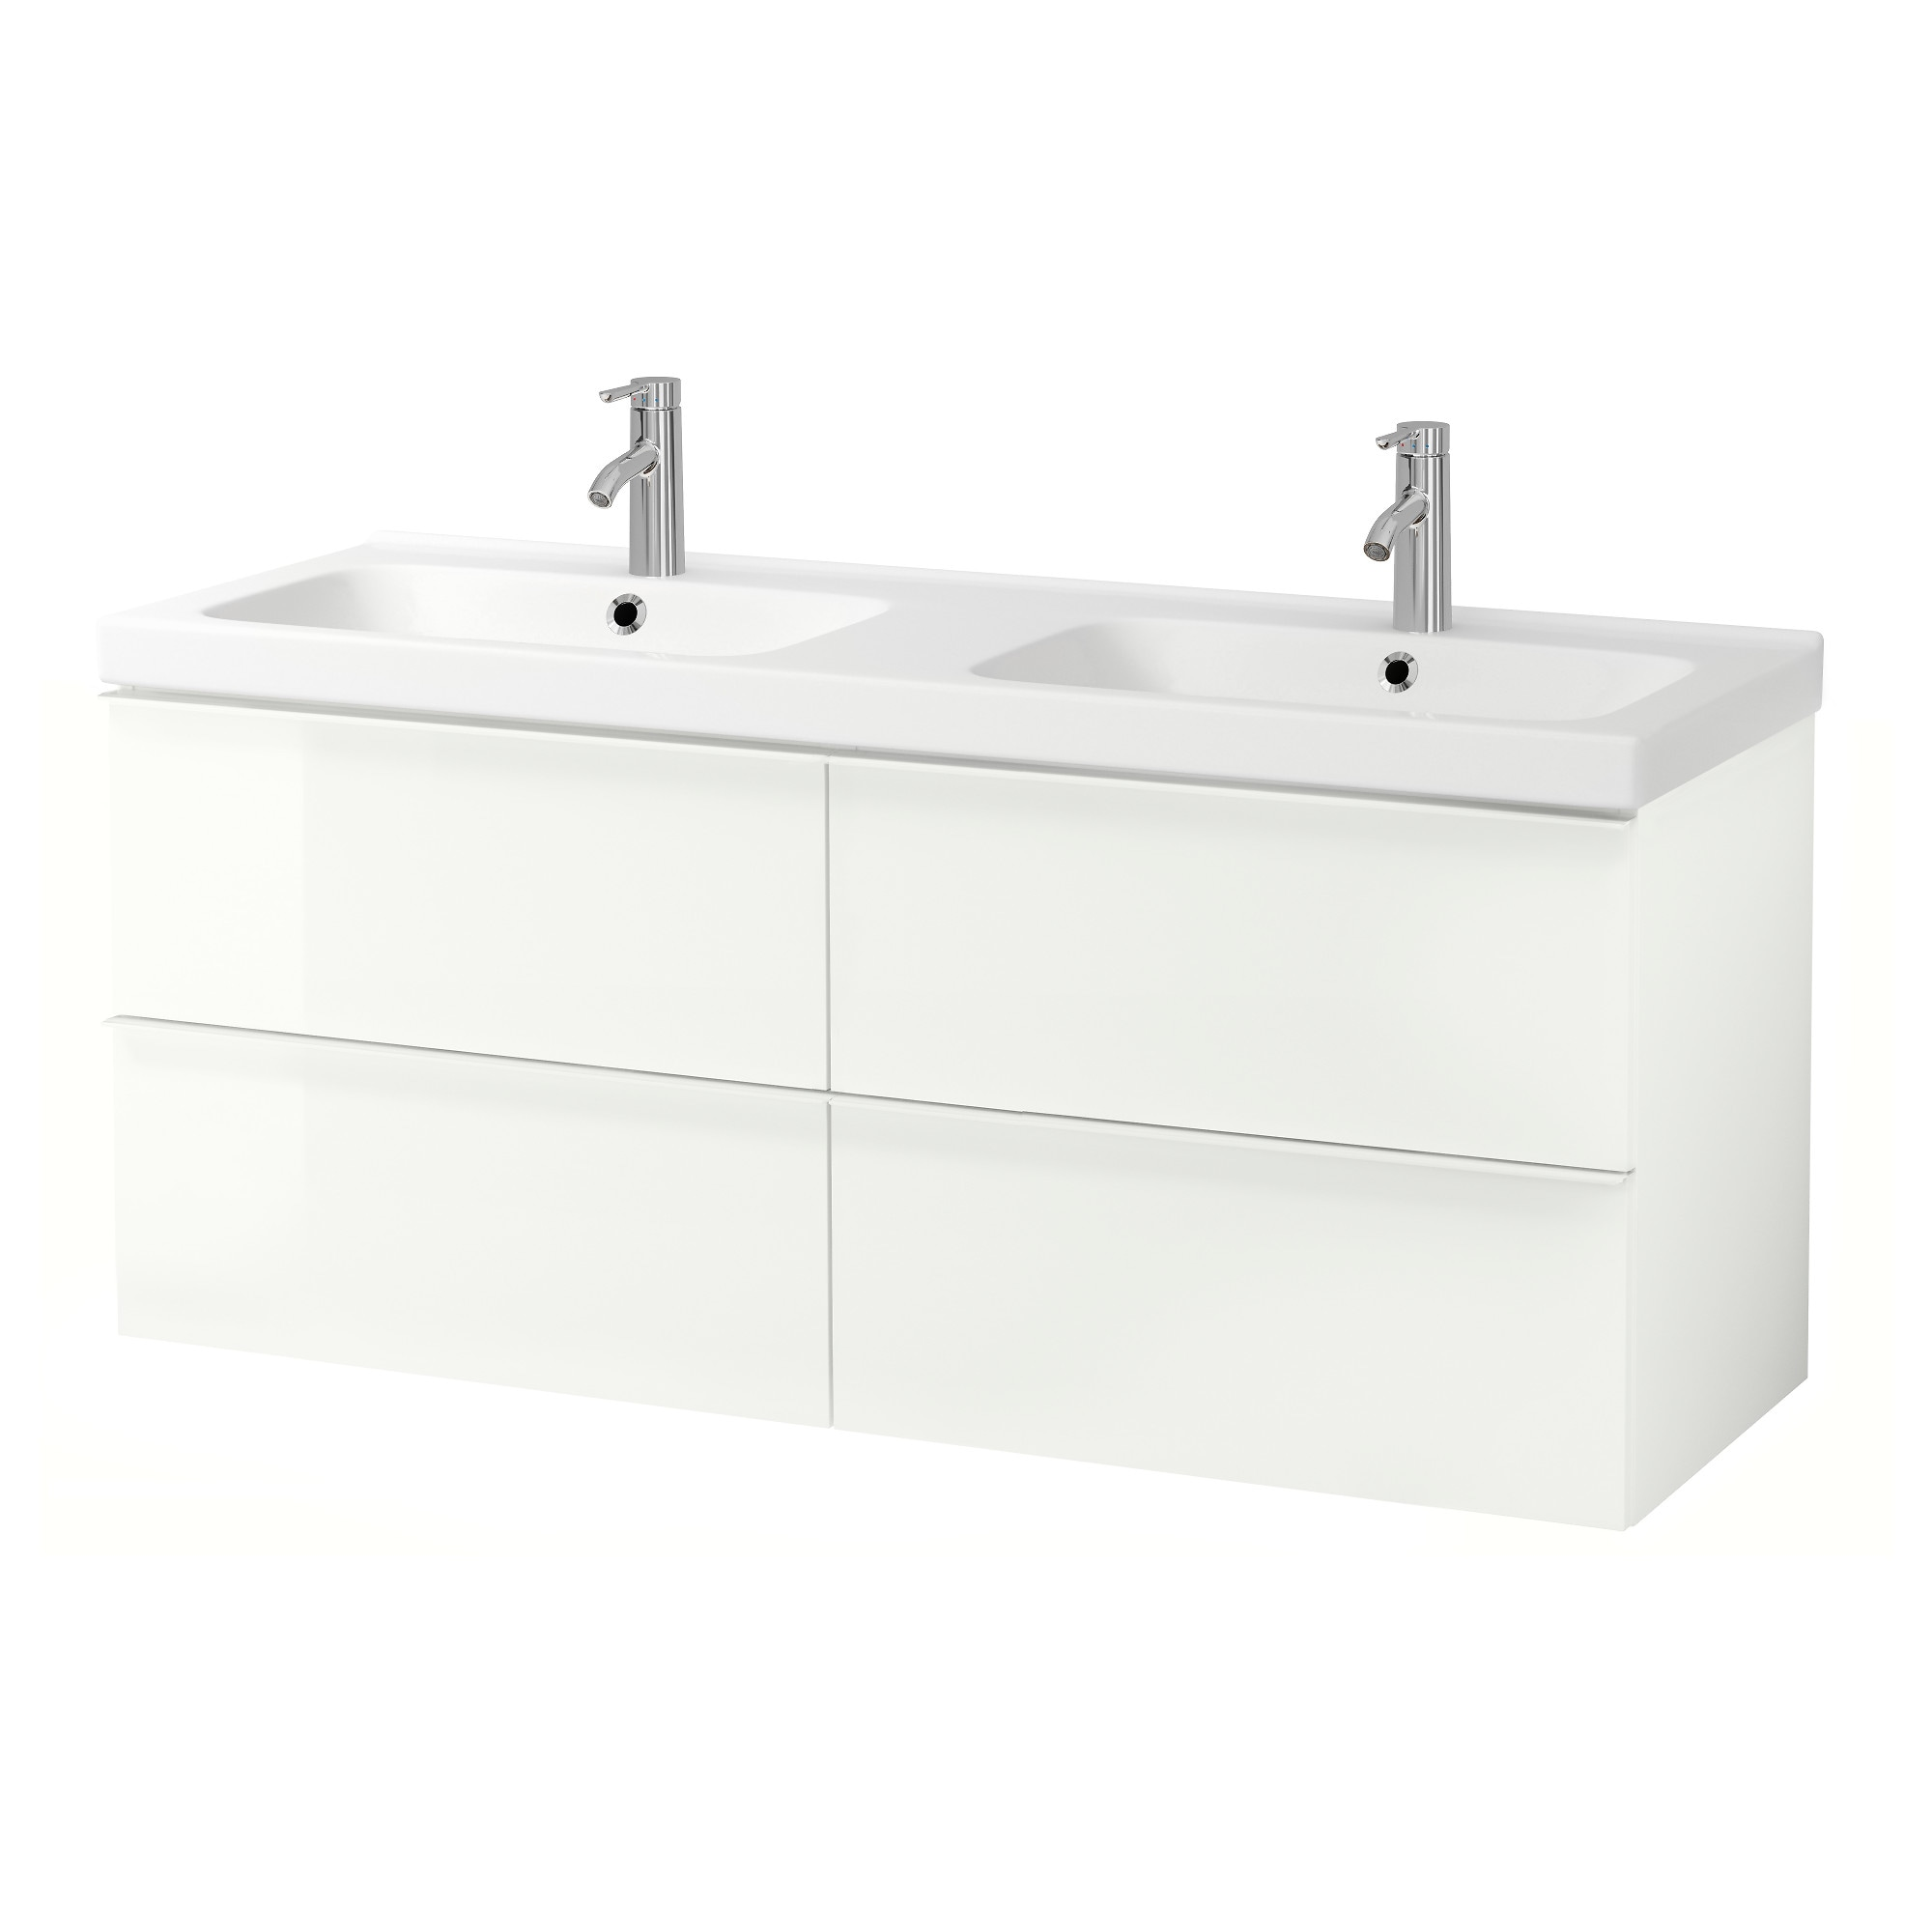 Ikea meuble vasque wc 28 images les 25 meilleures id for Meuble wc ikea